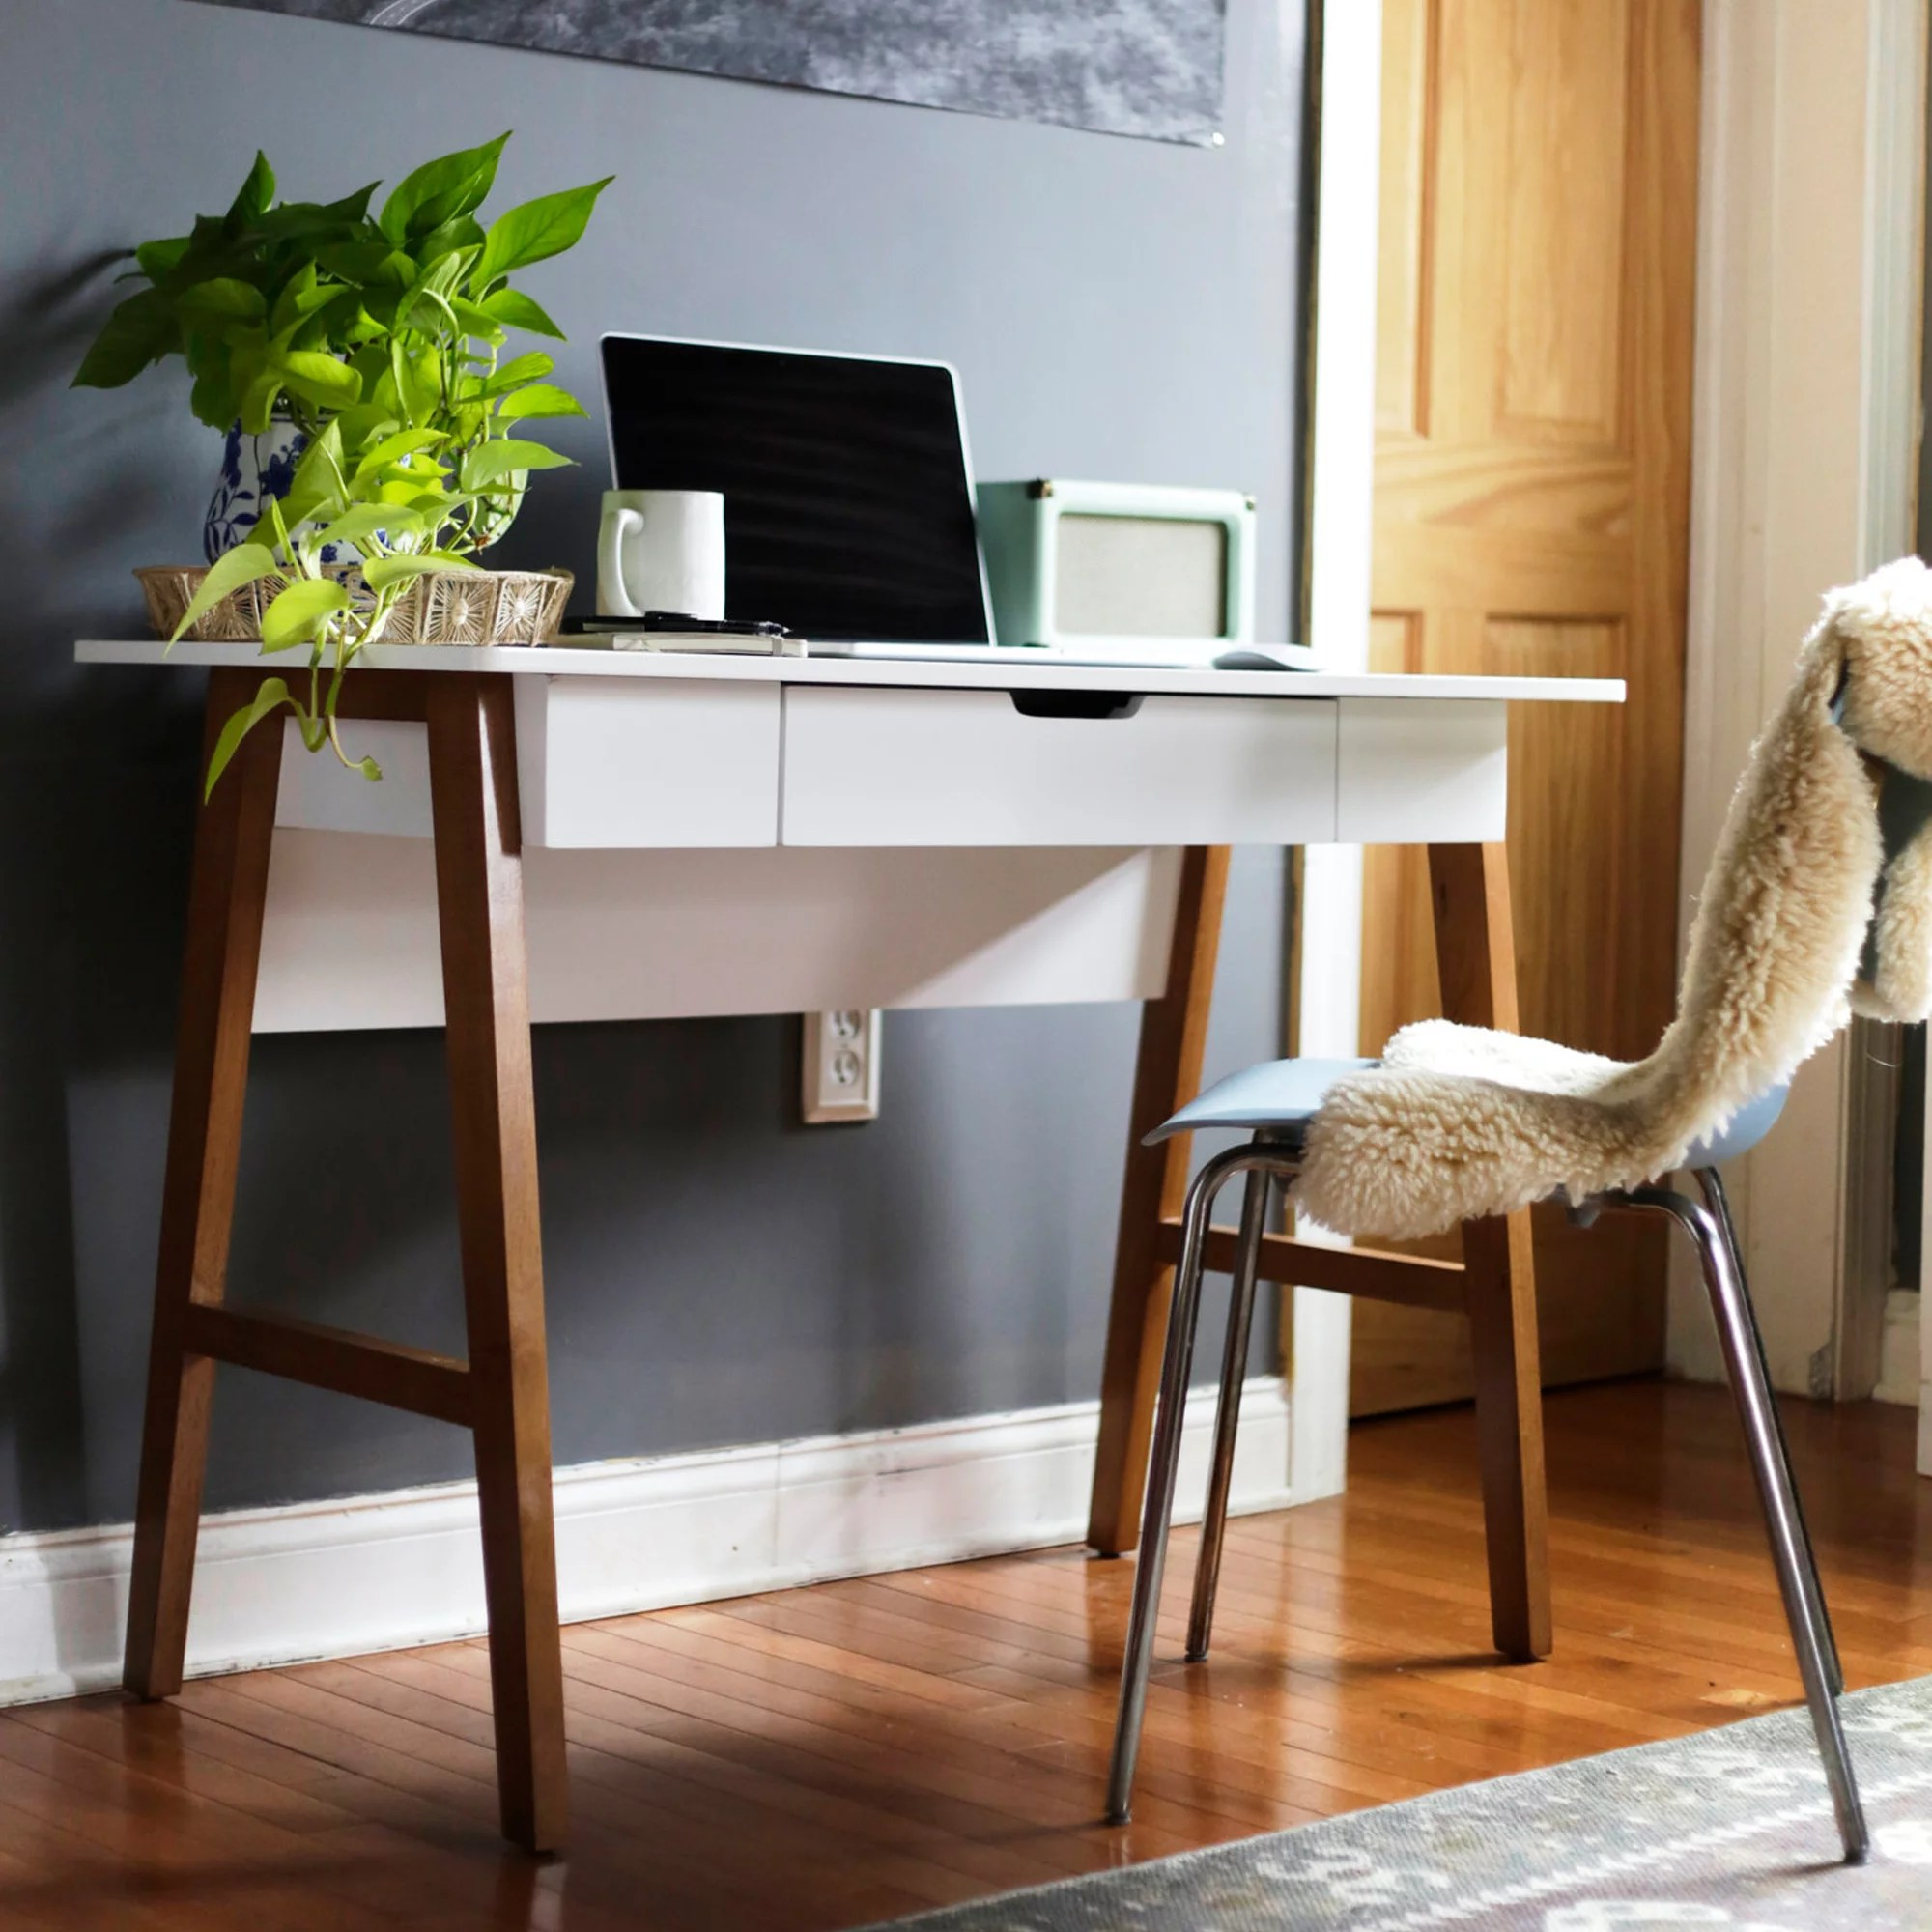 nathan james telos home office computer desk with drawer white modern finish and light wood legs